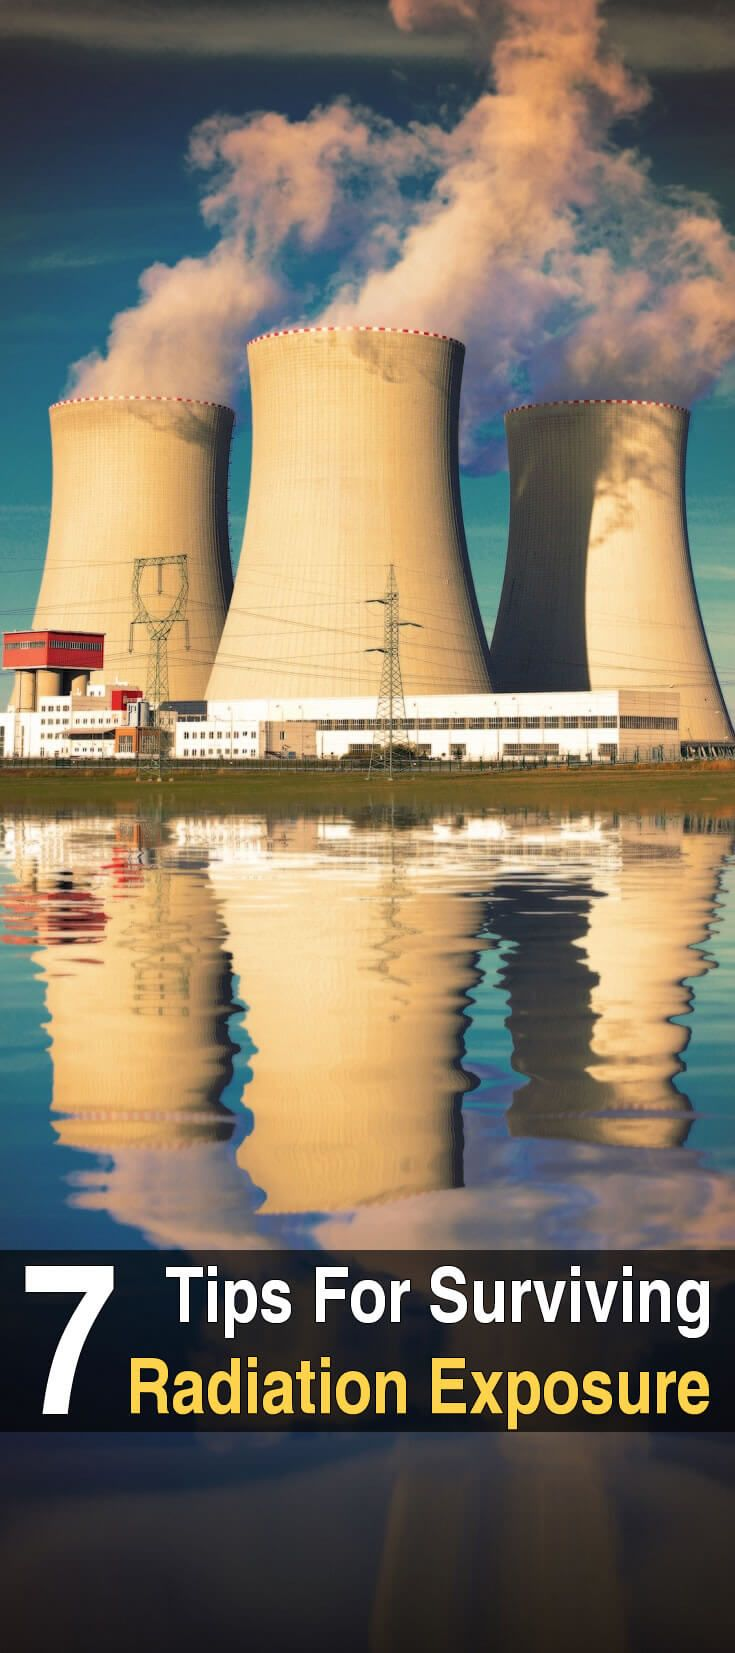 Radiation exposure can happen in a number of ways: Nuclear war, a nuclear leak at a power plant, contact with radioactive waste, etc. Here's what to do.